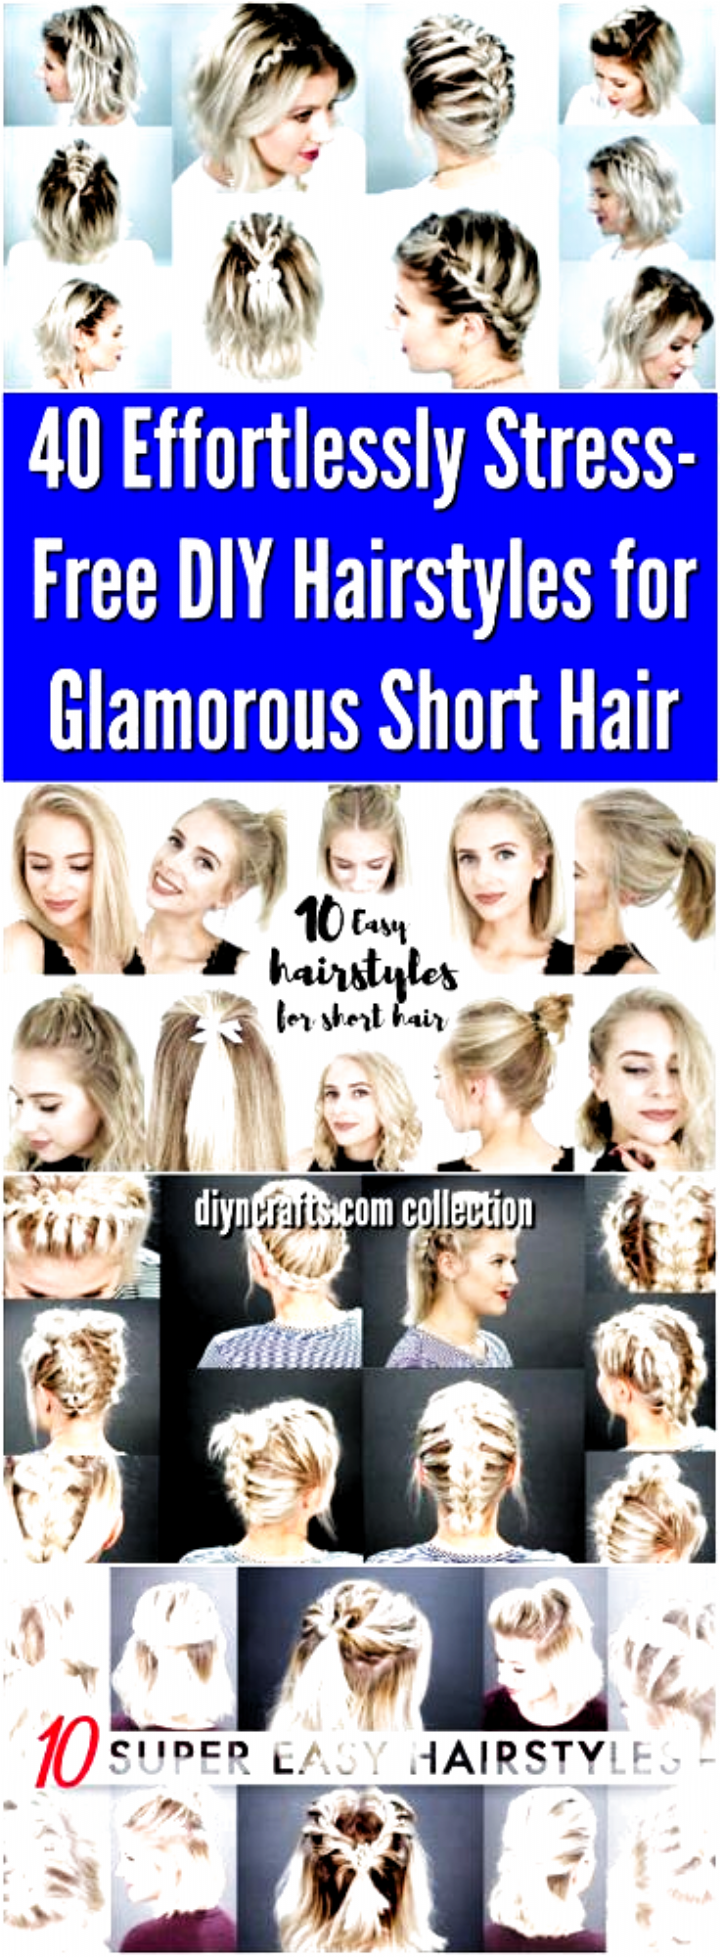 170 Easy Hairstyles Step By Step Diy Hair Styling Can Help You To Stand Apart From The Crowds Page 62 Short Hair Updo Short Hair Styles Medium Hair Styles